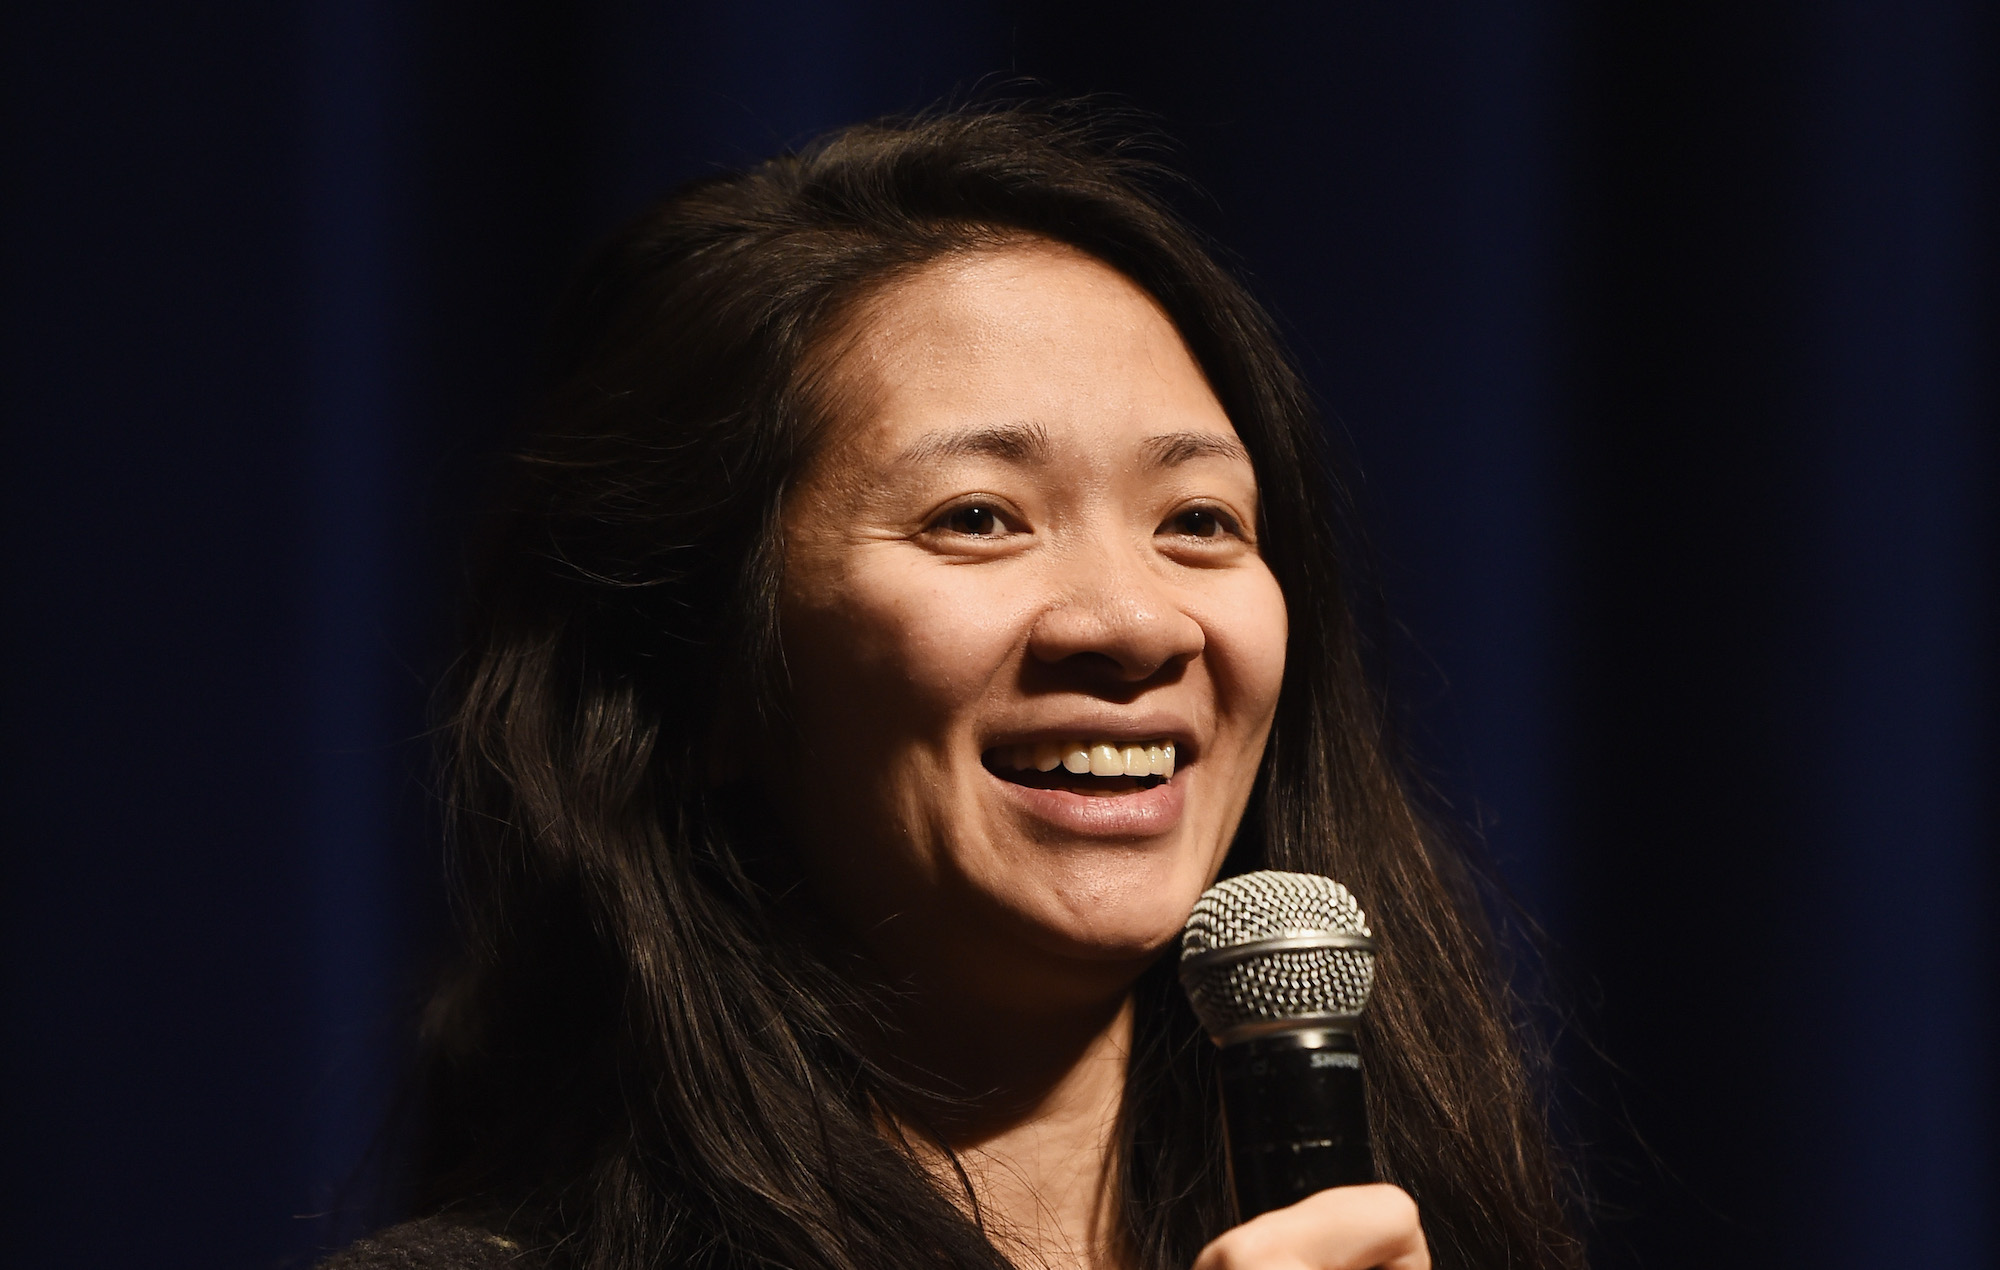 'Nomadland' censored in China over director Chloé Zhao's criticism of country